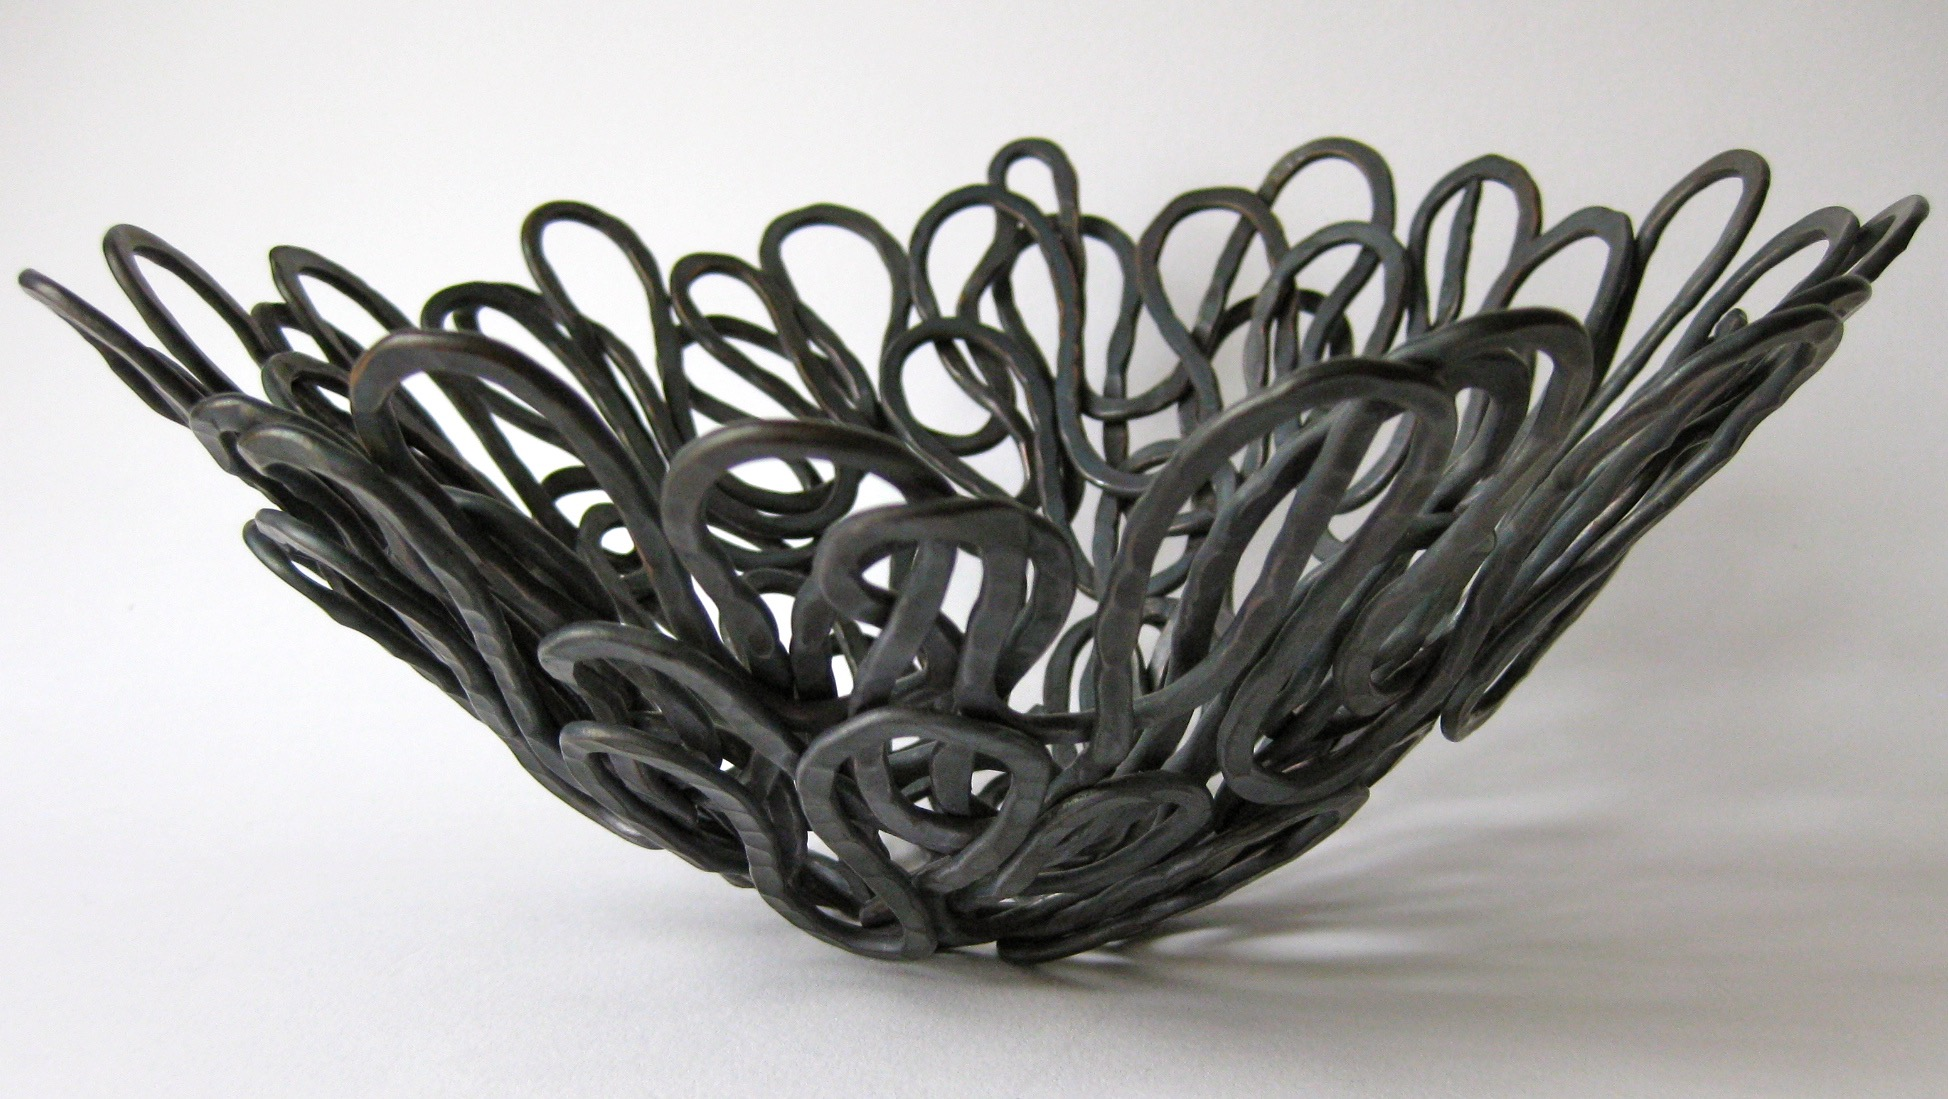 Sculptural Form Woven Basket, 2013, Hand Forged Oxidised Copper